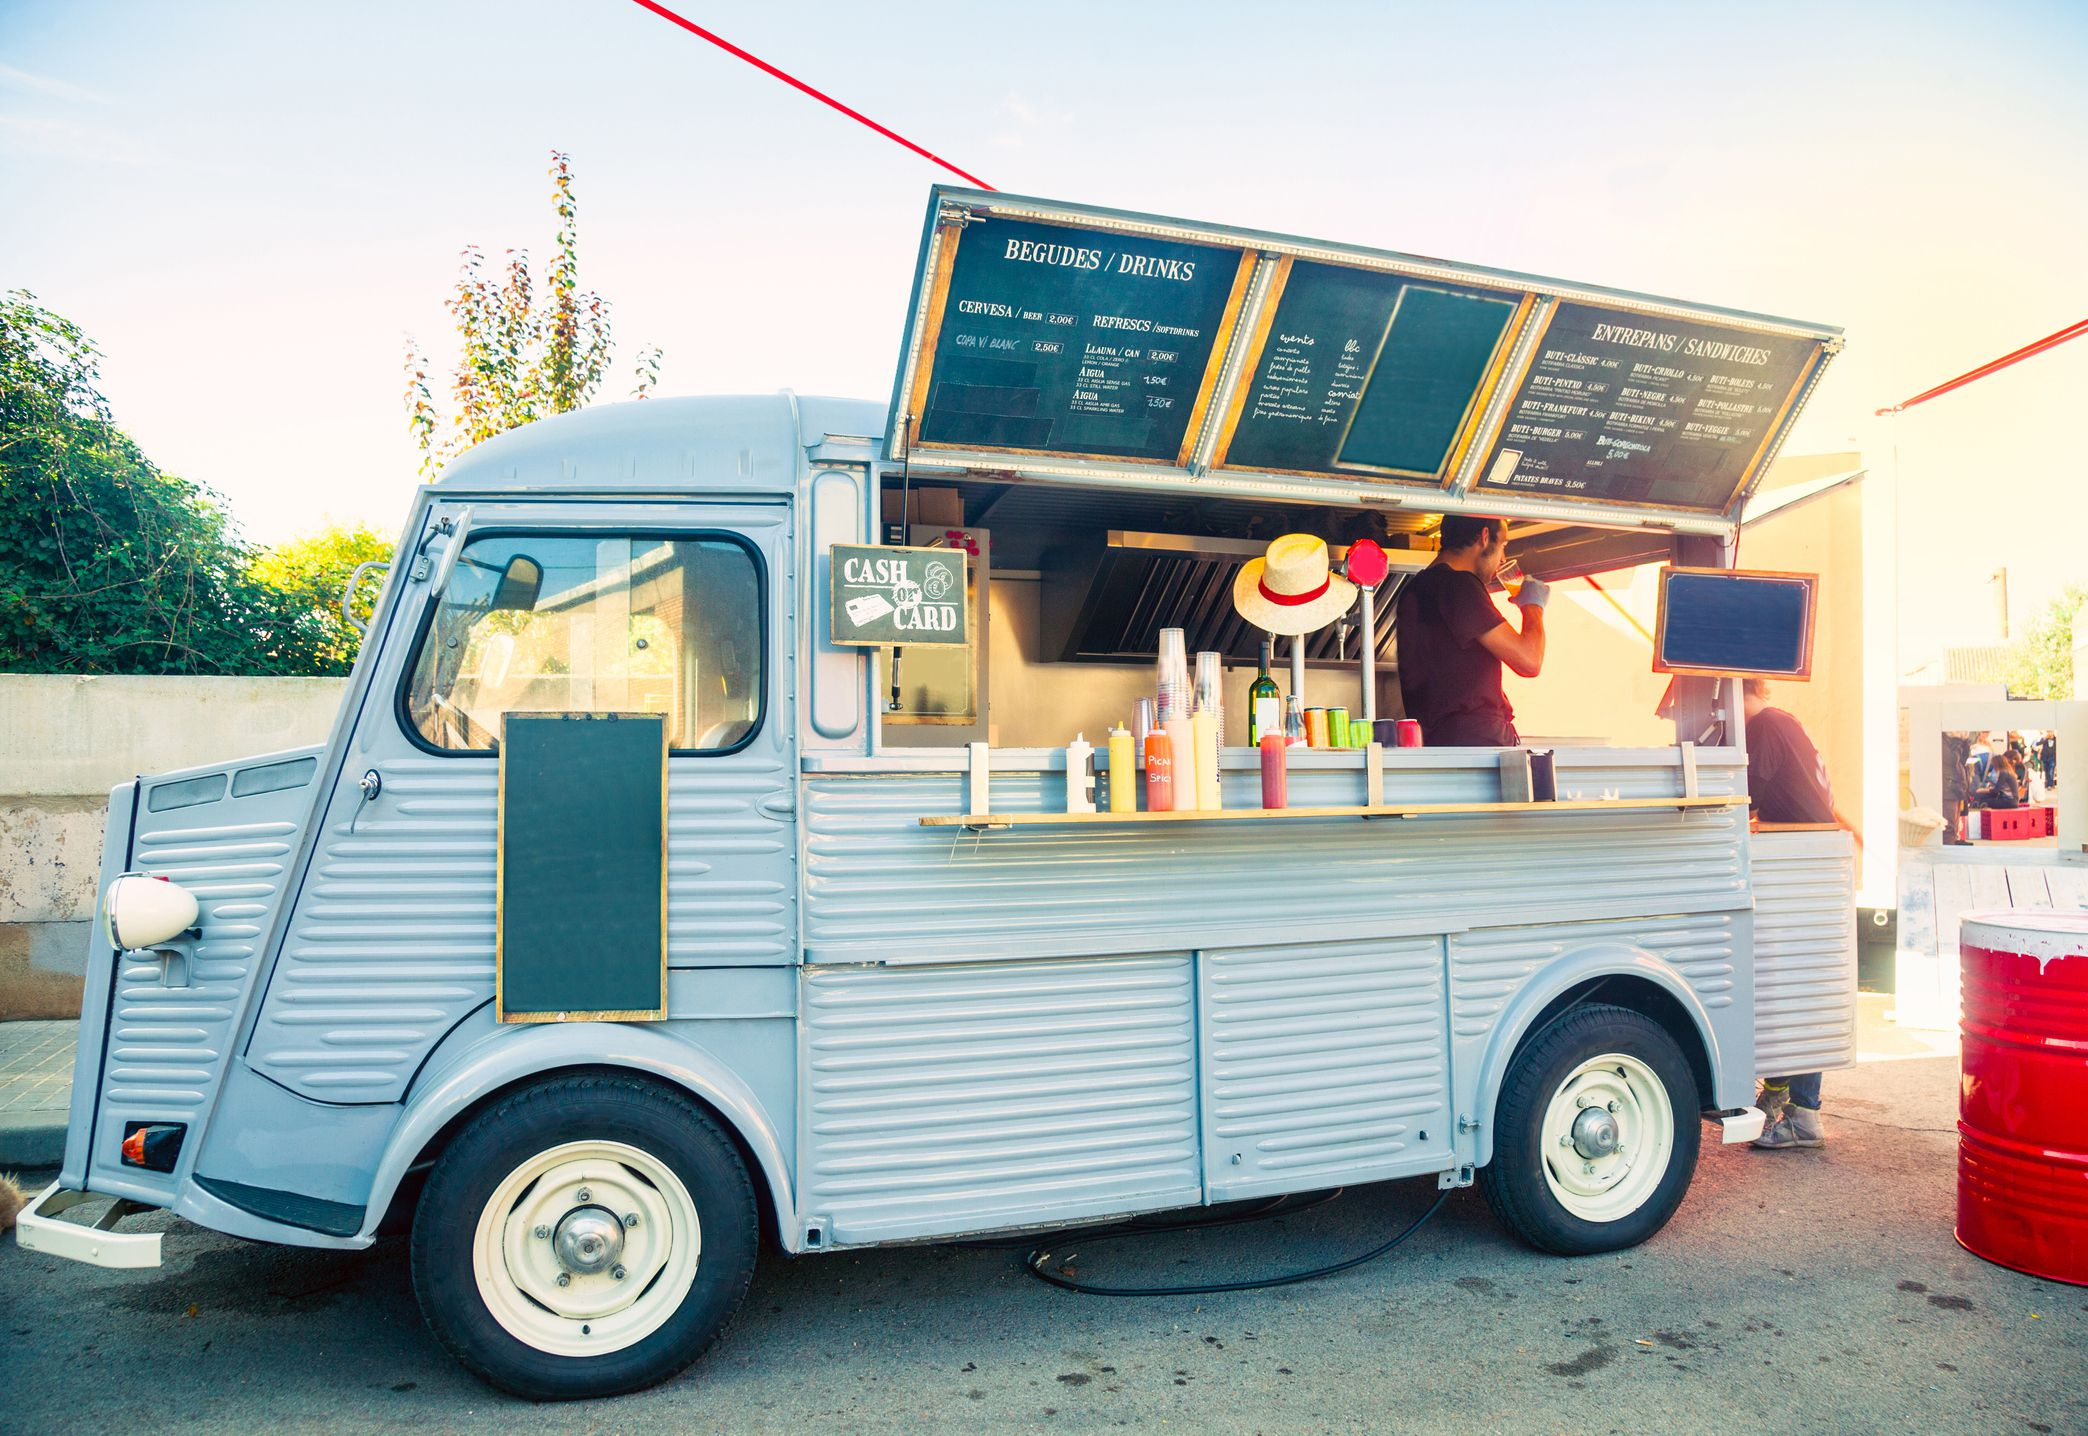 Inspiration Cuisine En U inspiration and ideas for 10 different food truck styles